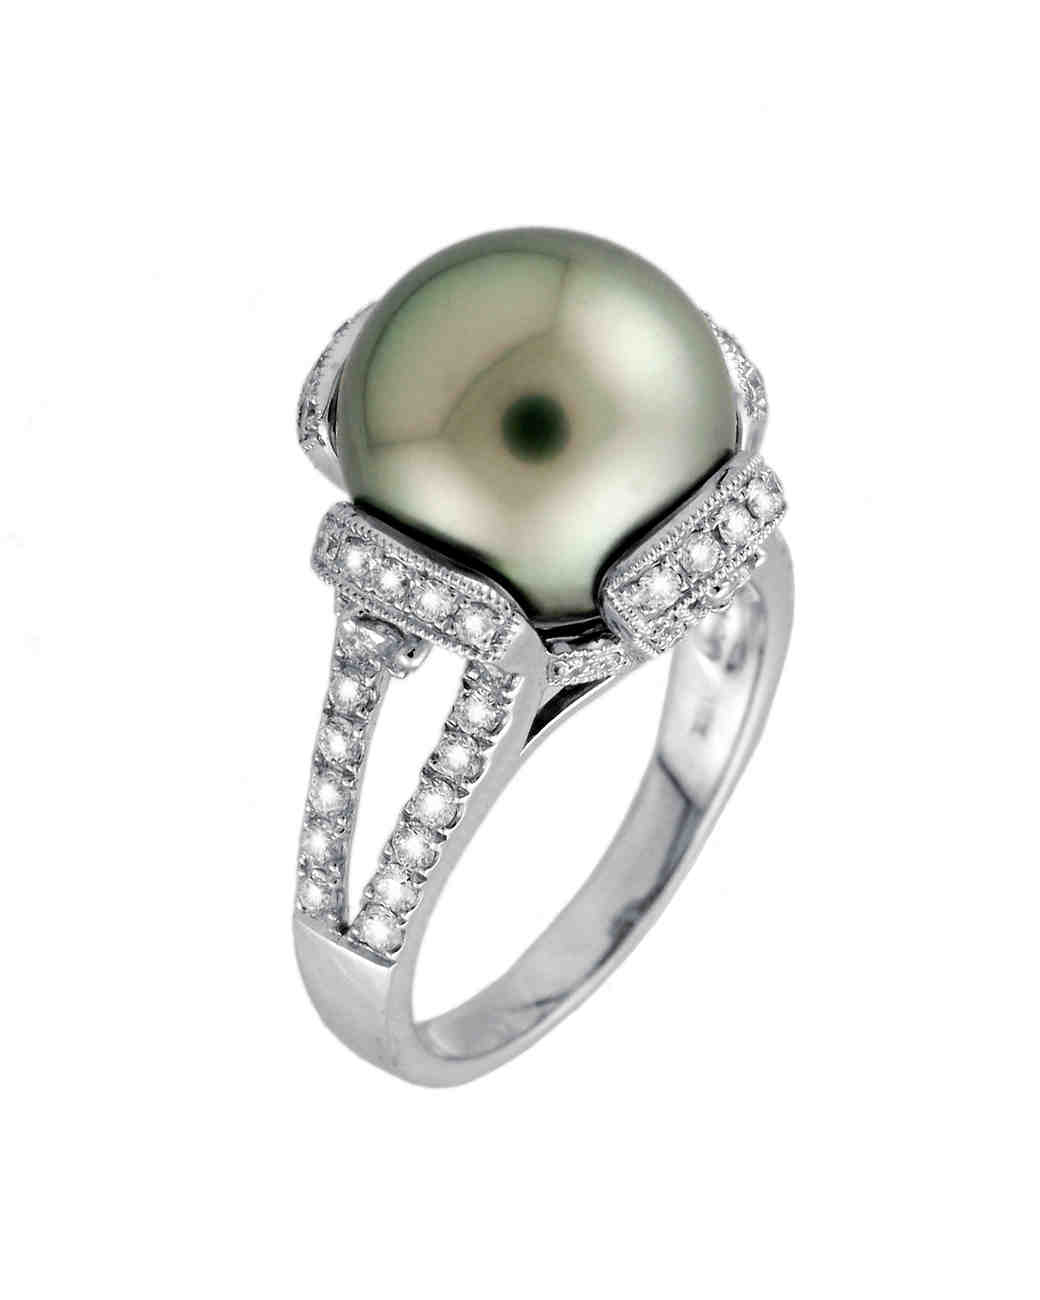 ring engagement rings engagament pearls antique attractive wedding pearl diamond